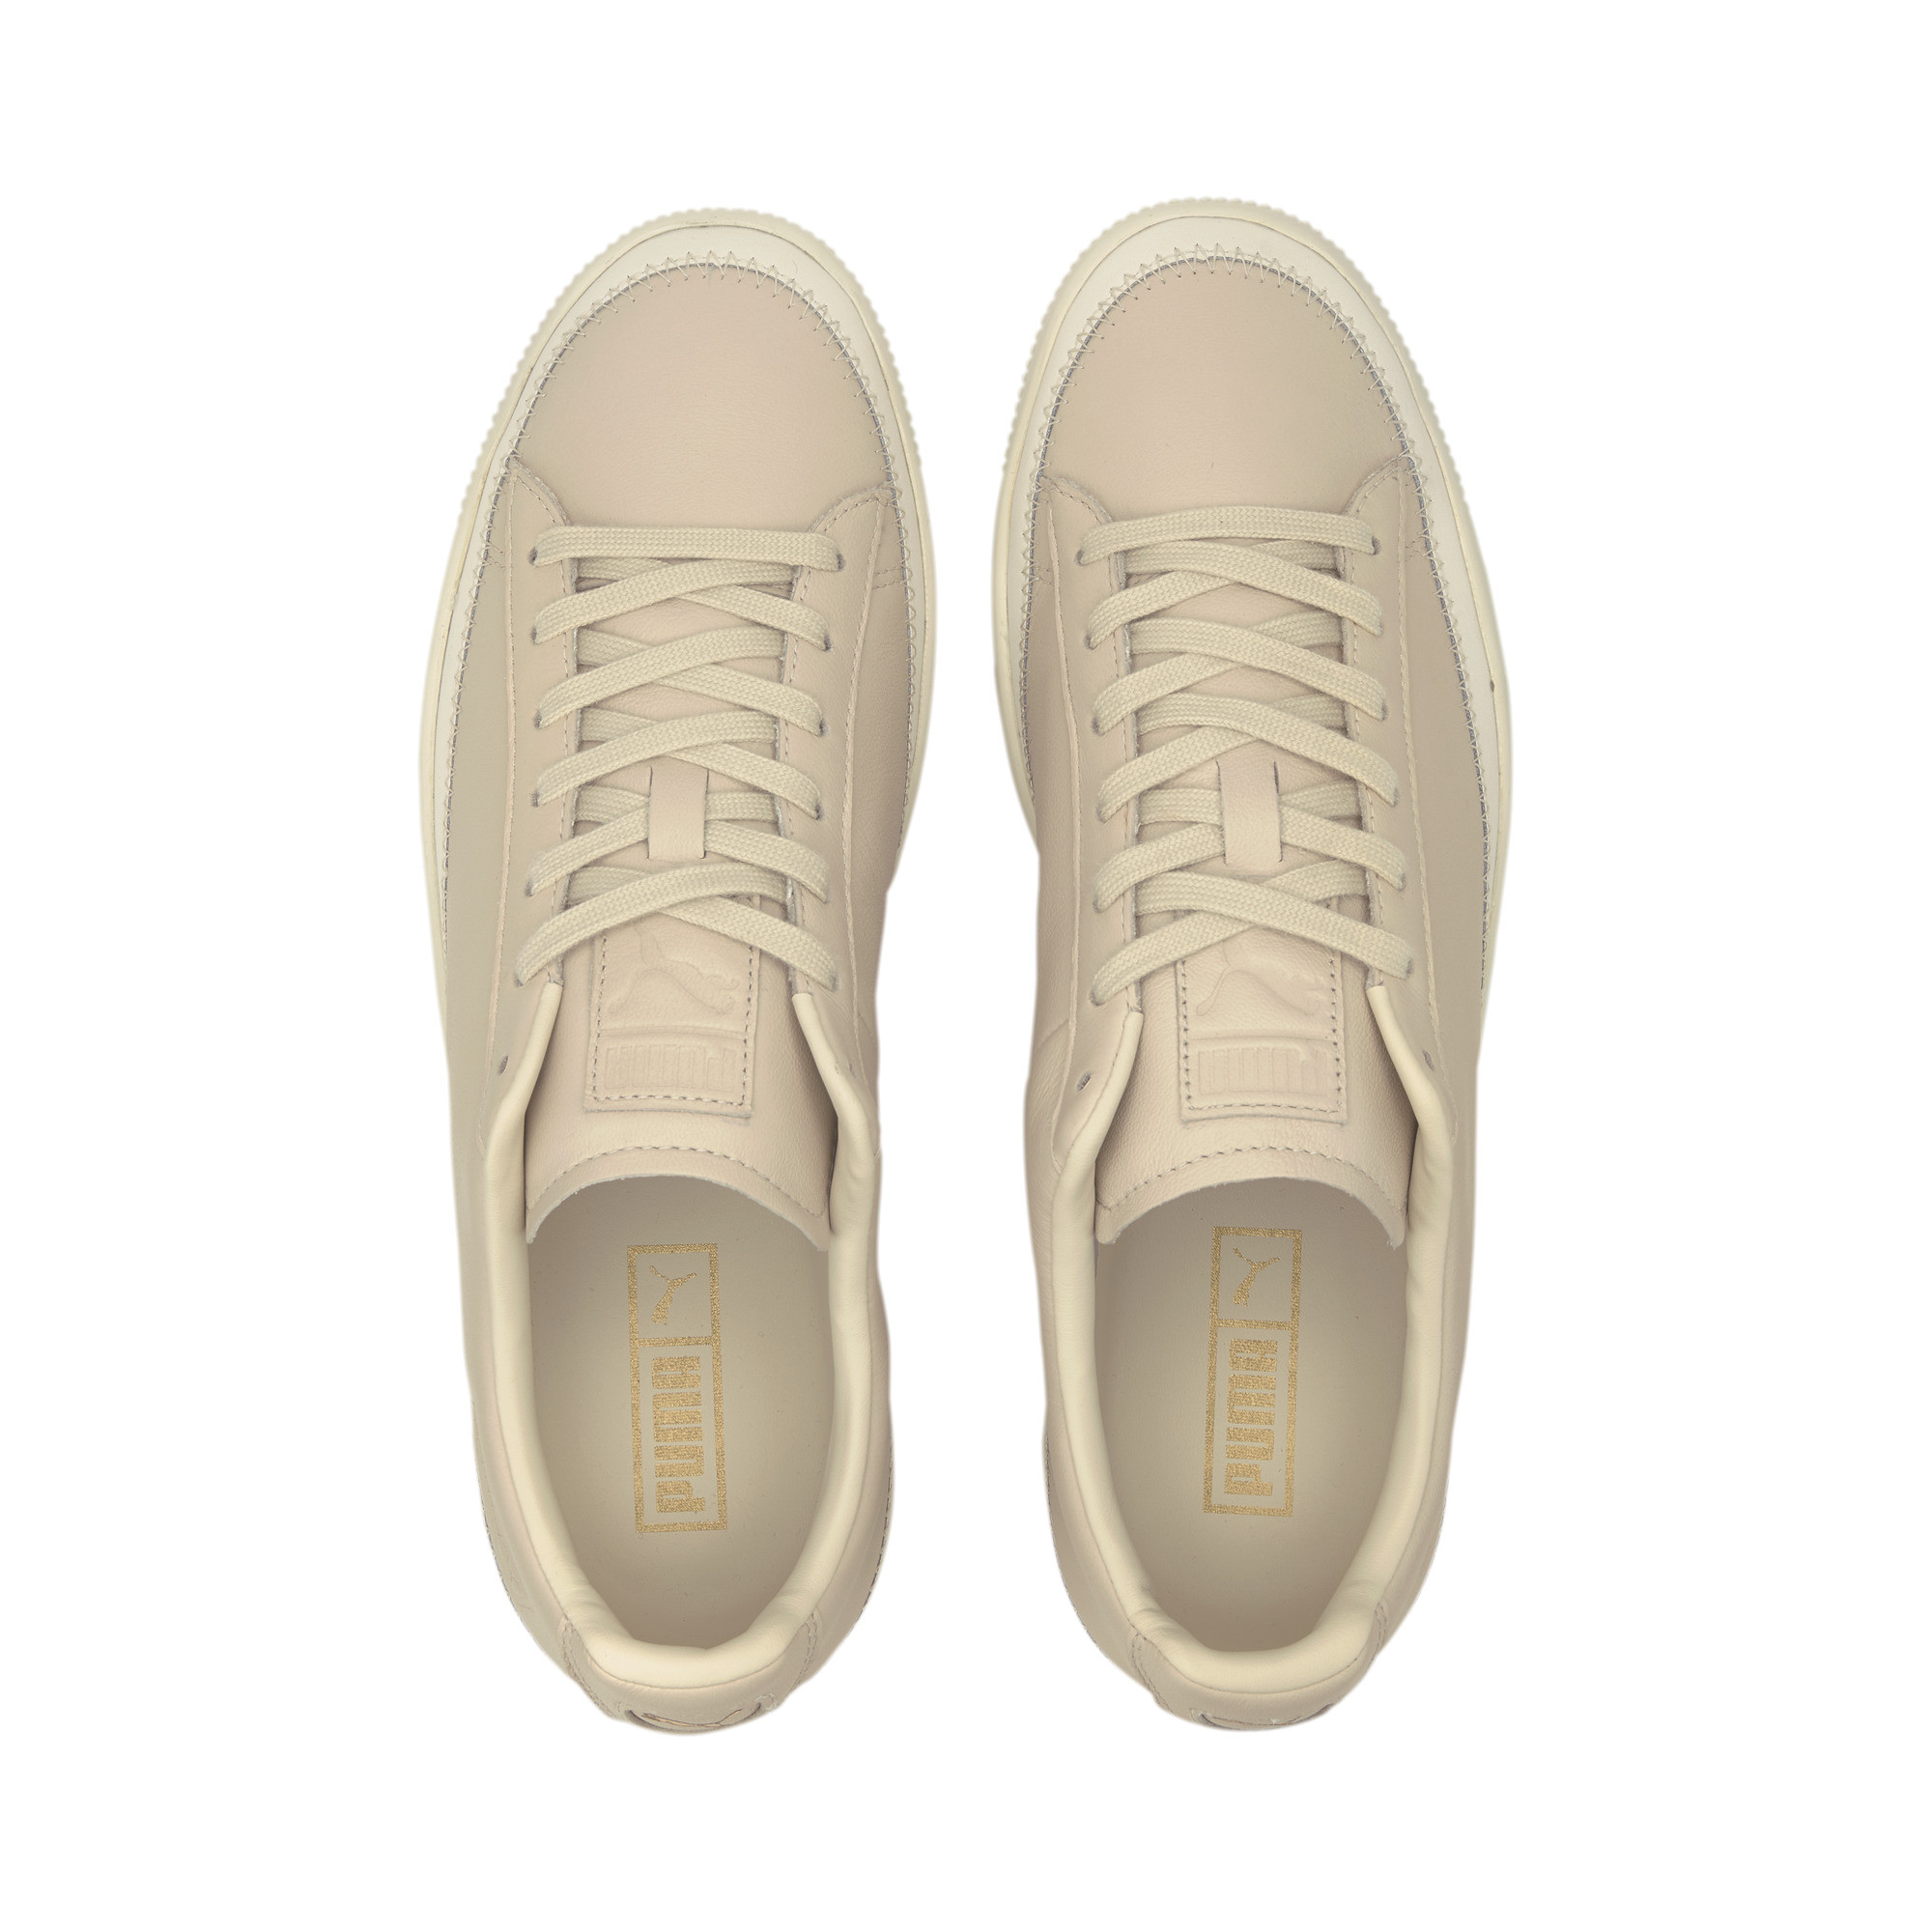 PUMA-Men-039-s-Basket-Trim-PRM-Sneakers thumbnail 15